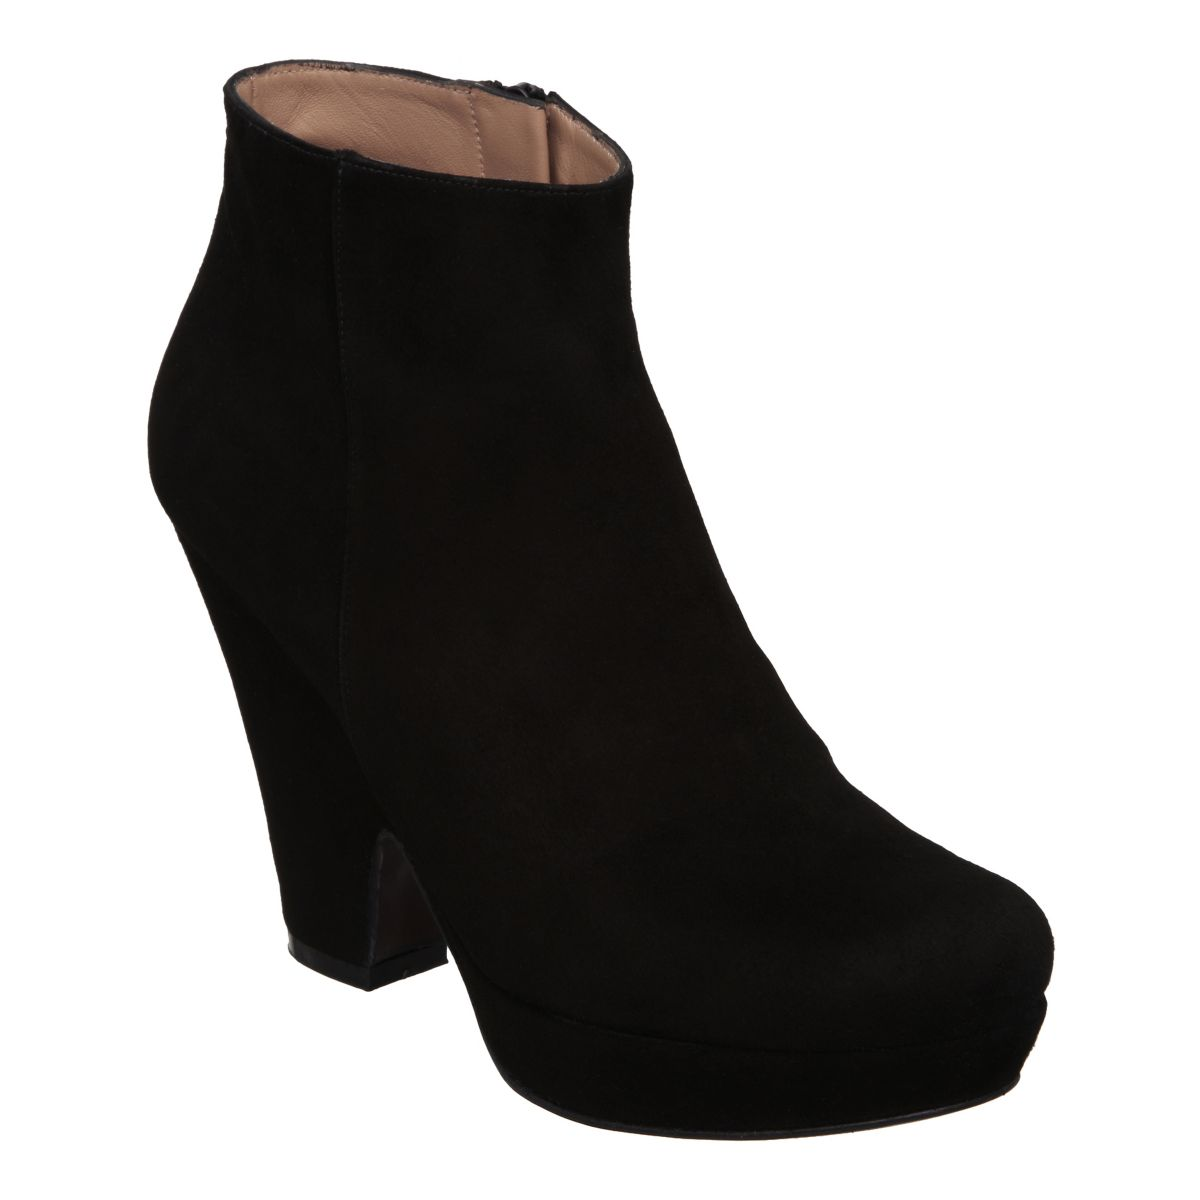 PIED-A-TERRE-SYMONS-BLACK-SUEDE-LADIES-BLOCK-HEEL-WOMENS-ANKLE-BOOTS-SIZE-3-8-UK